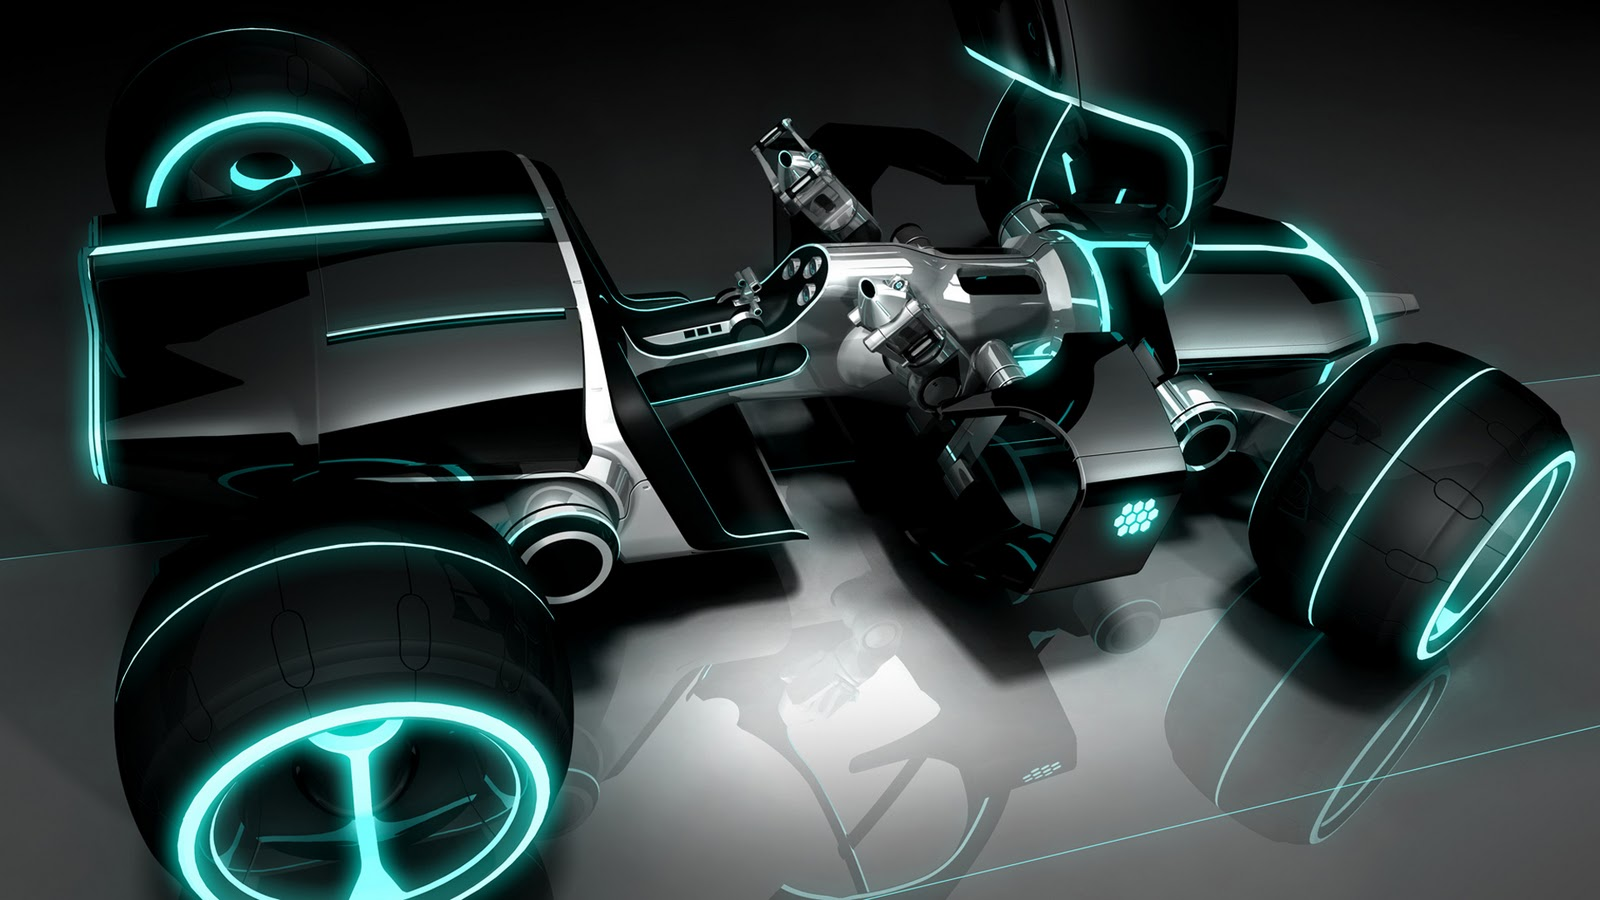 tron legacy light car wallpapers - TRON LEGACY Light Car Wallpapers HD Wallpapers